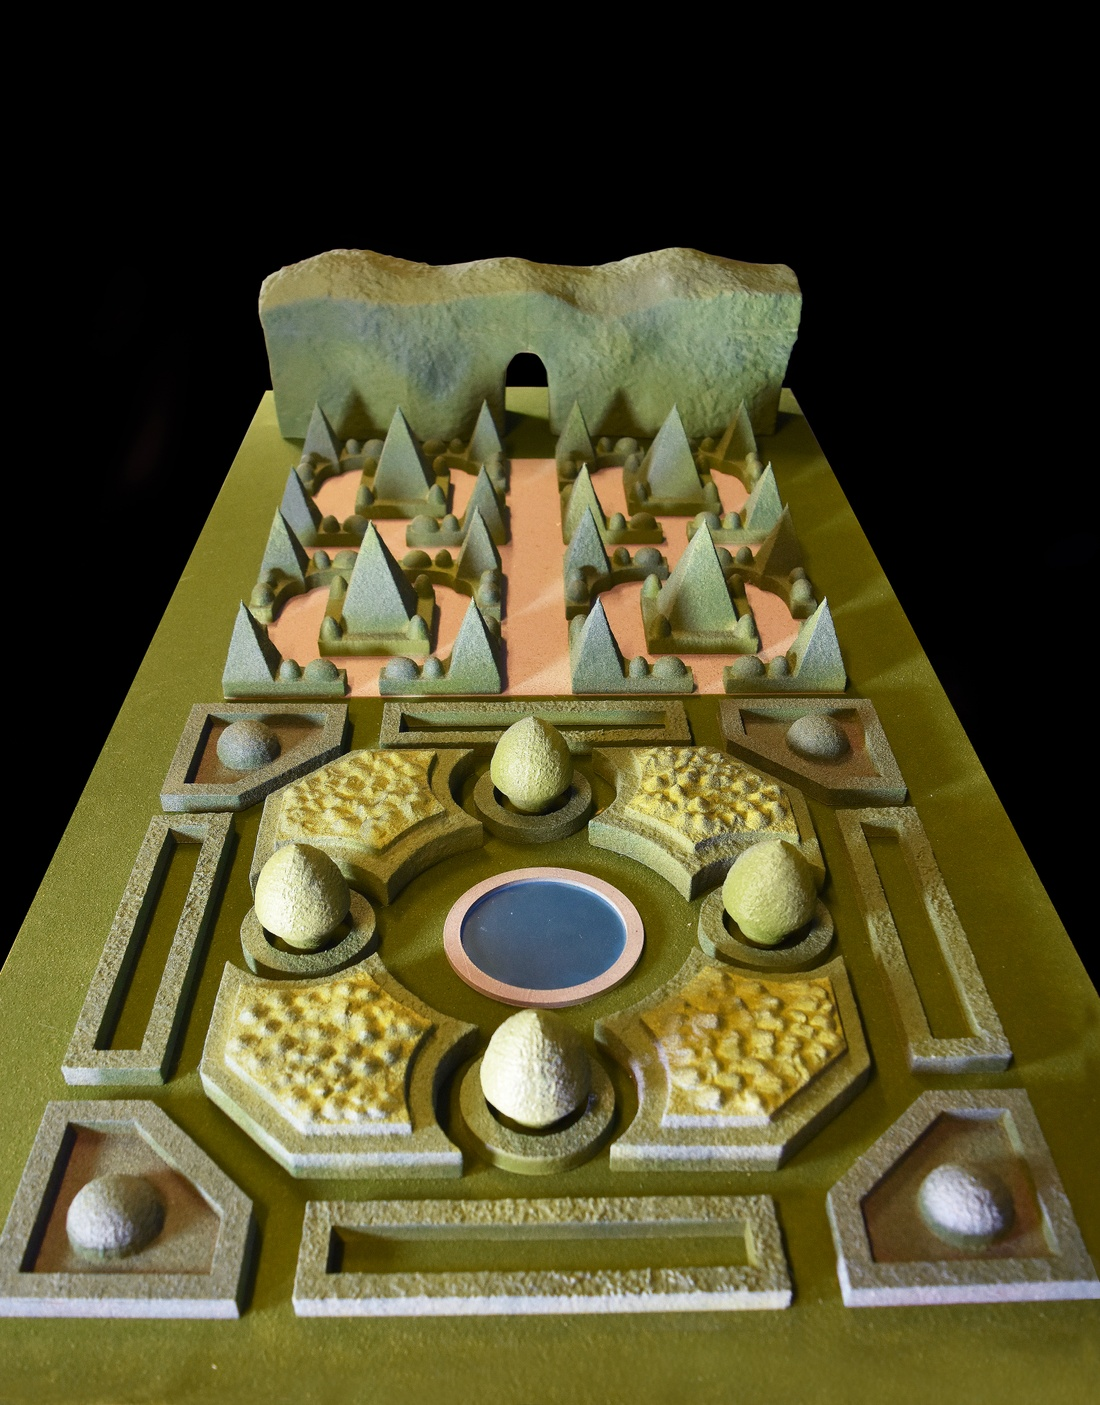 Model of a formal garden by Jamie Edindjiklian.